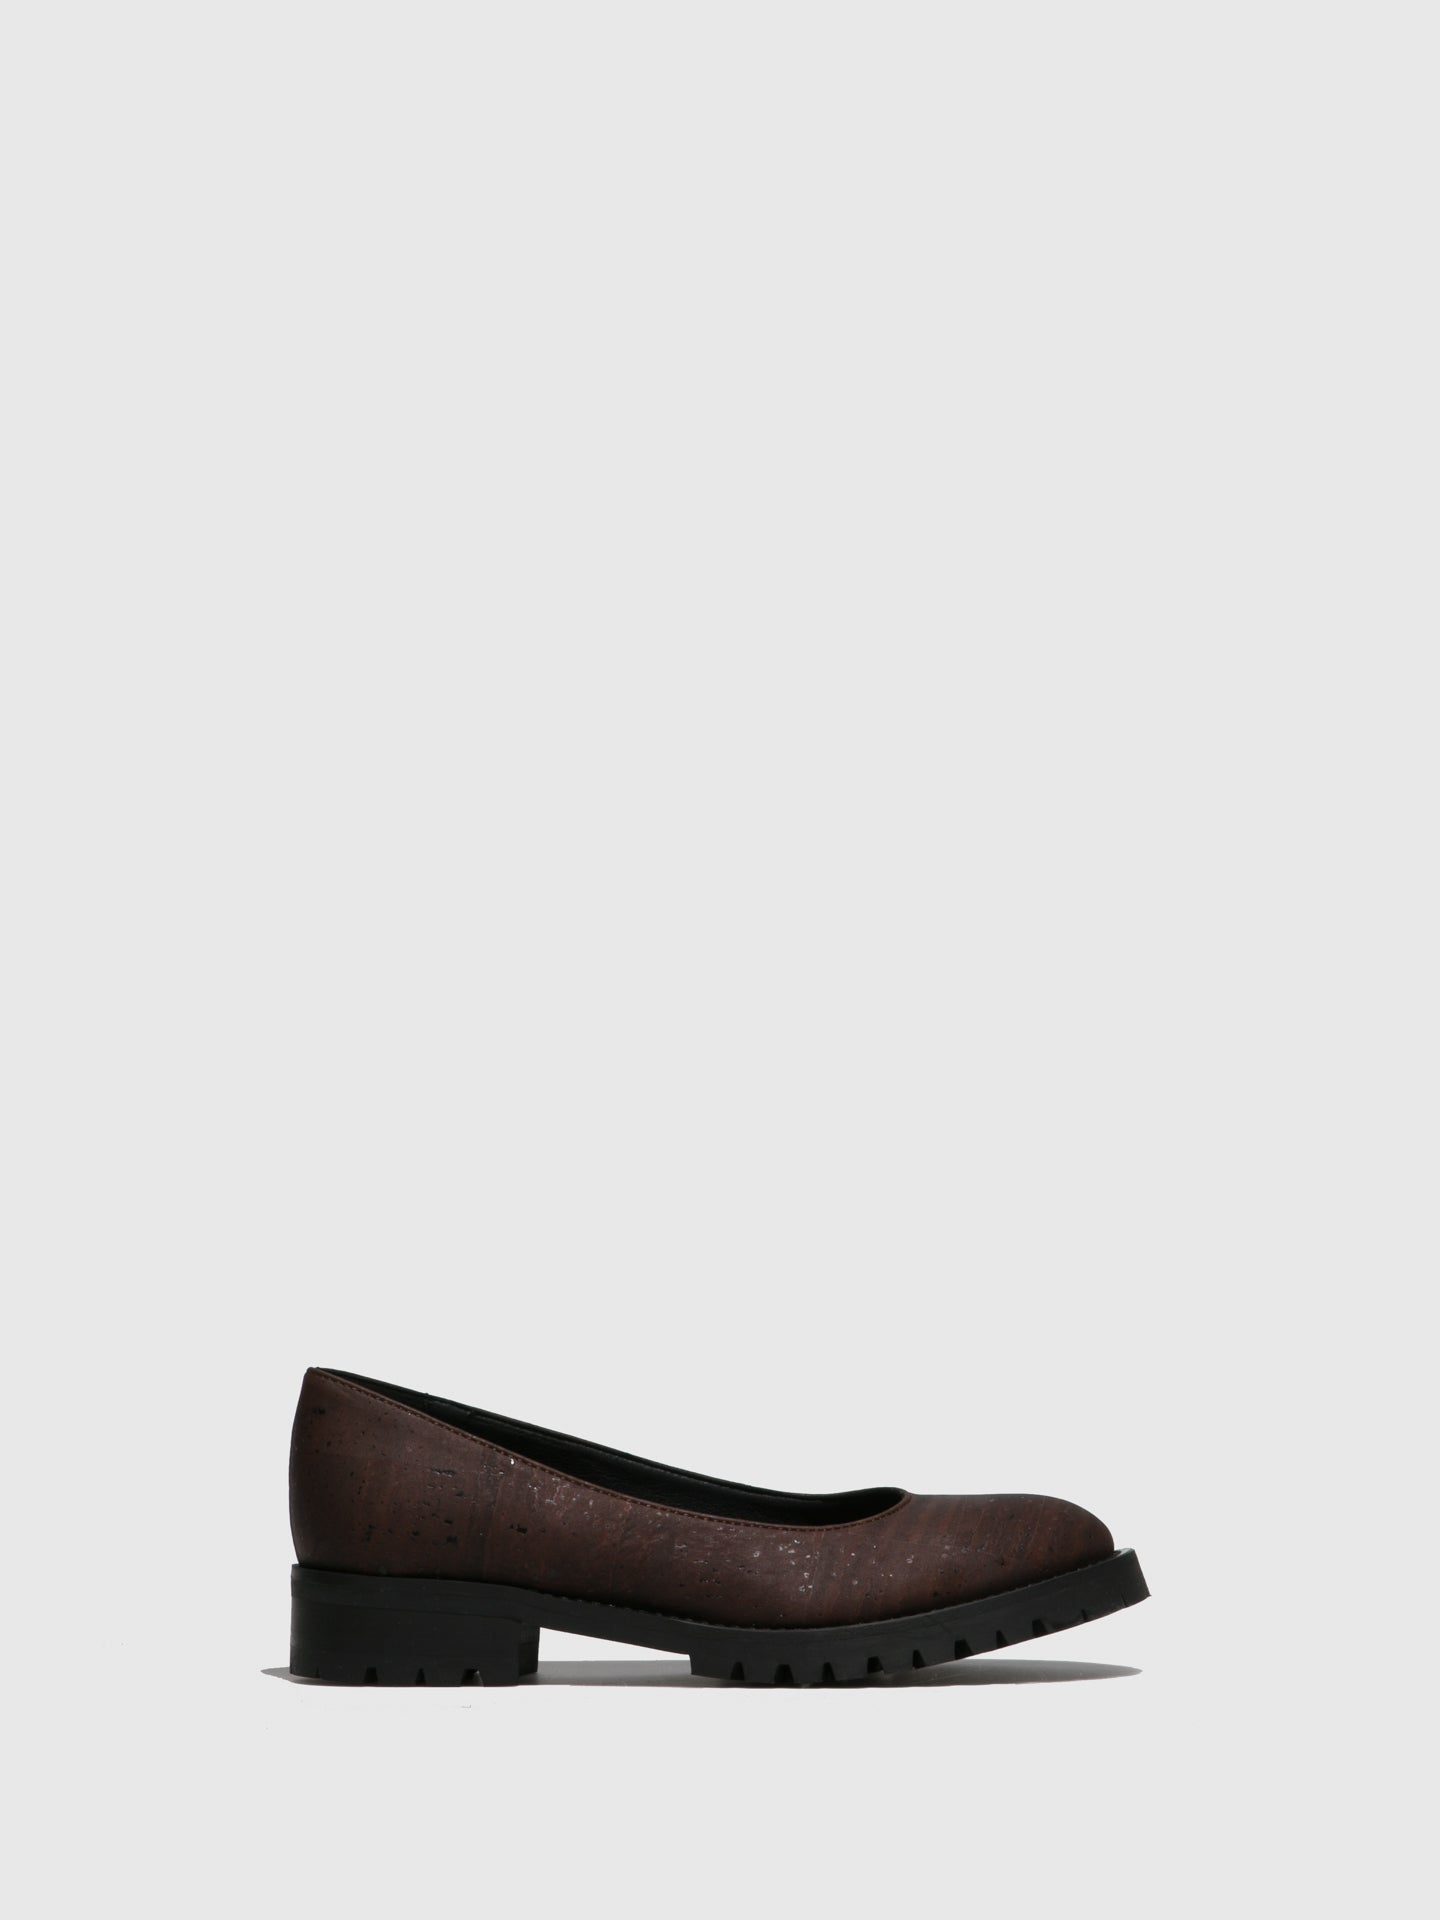 NAE Vegan Shoes Brown Round Toe Ballerinas